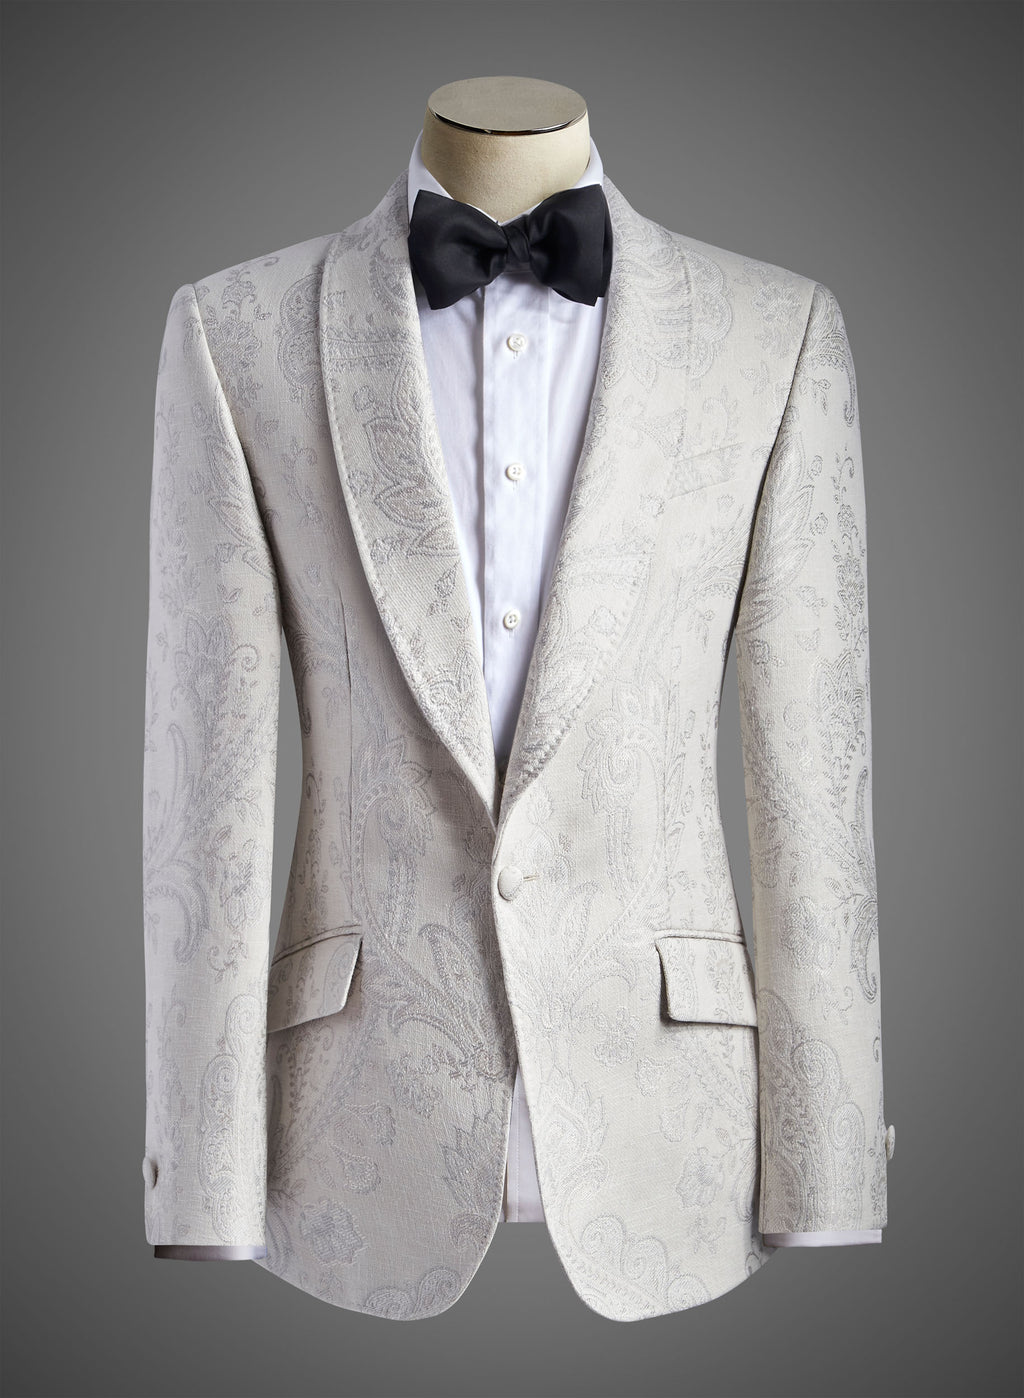 BW SIGNATURE JACKET - Satin Shawl Lapel  (Songbook Col 01 RS)